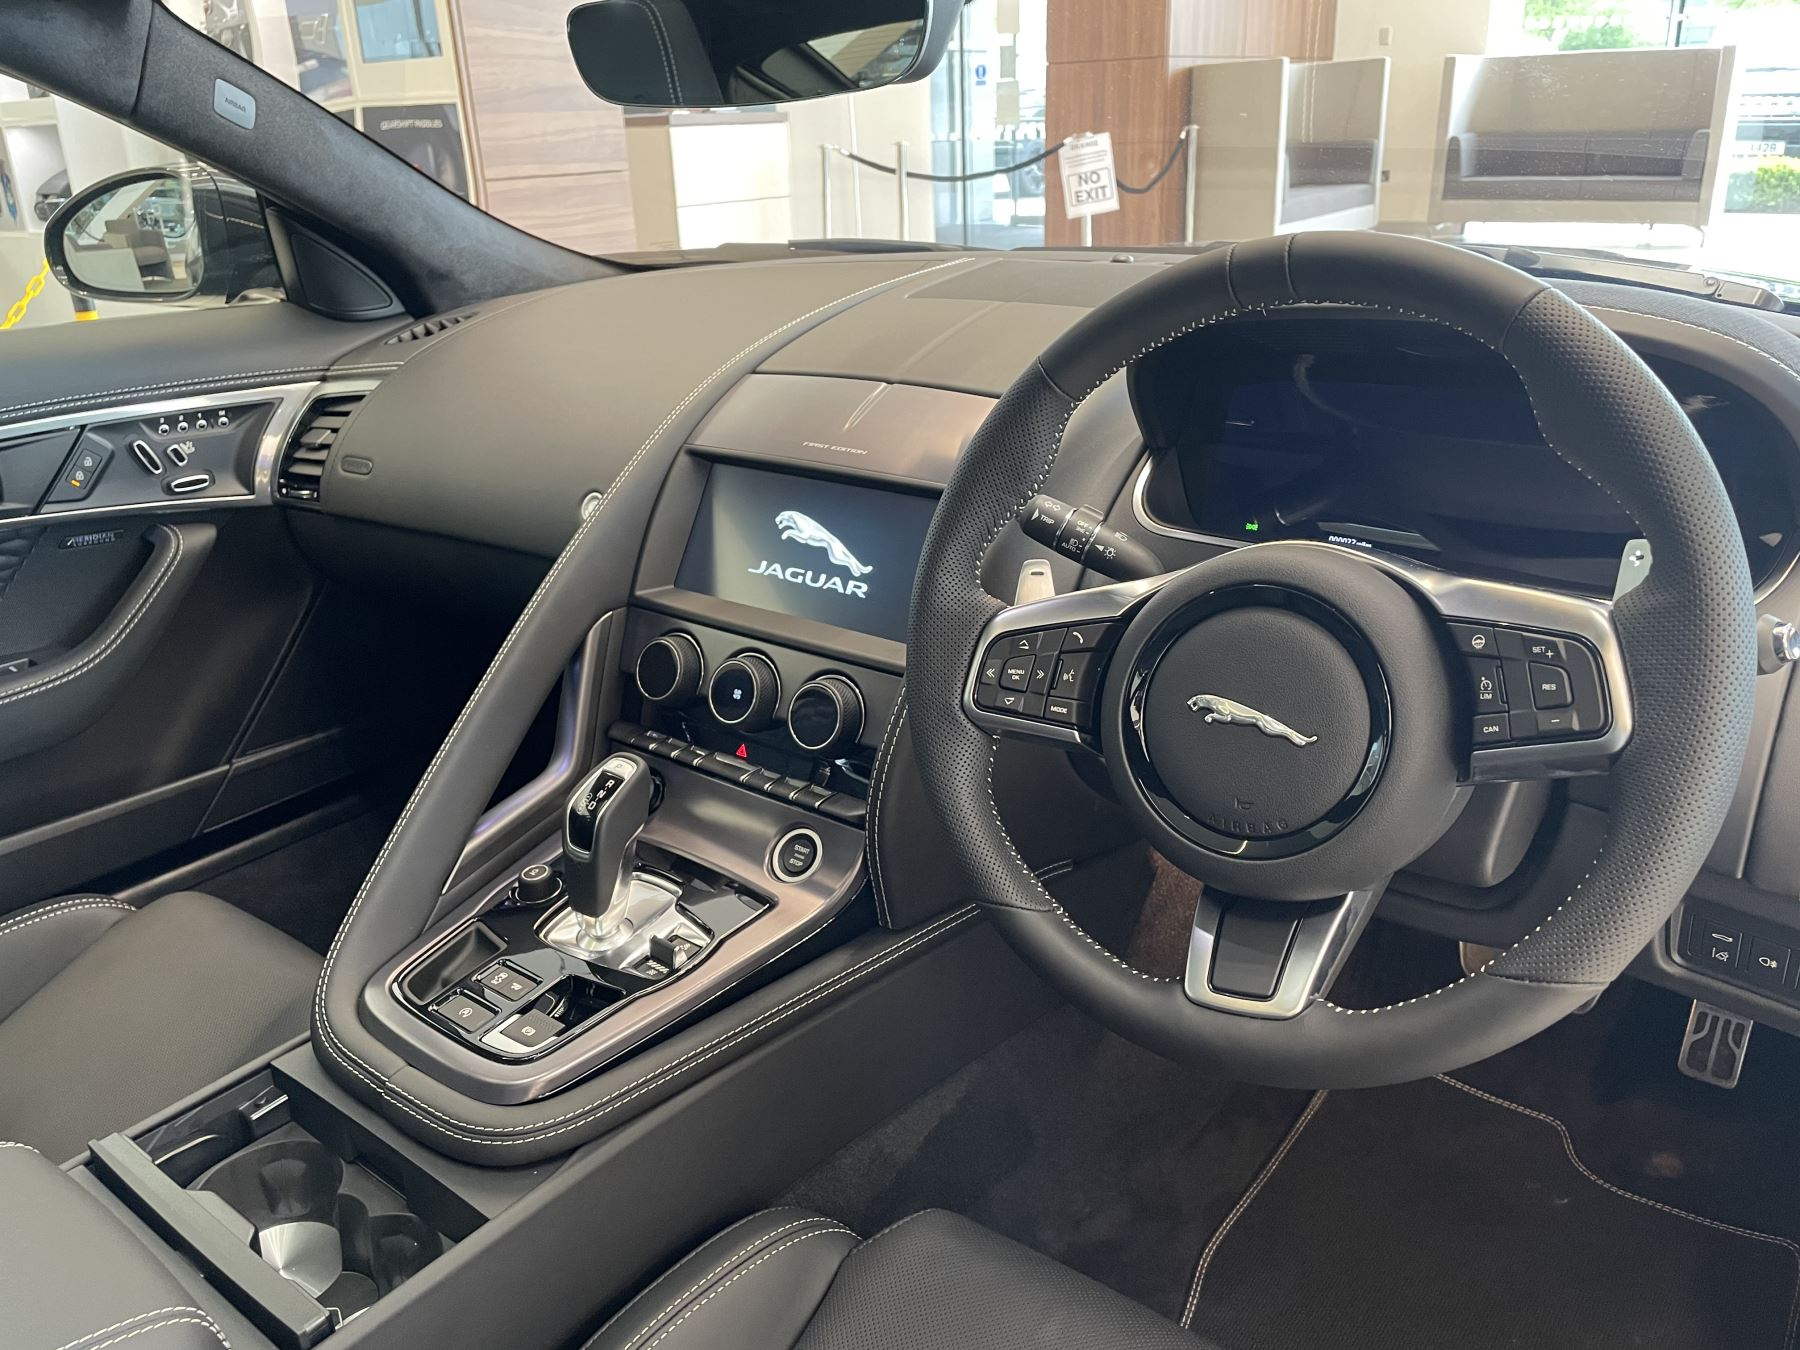 Jaguar F-TYPE 5.0 P450 S/C V8 First Edition AWD SPECIAL EDITIONS image 8